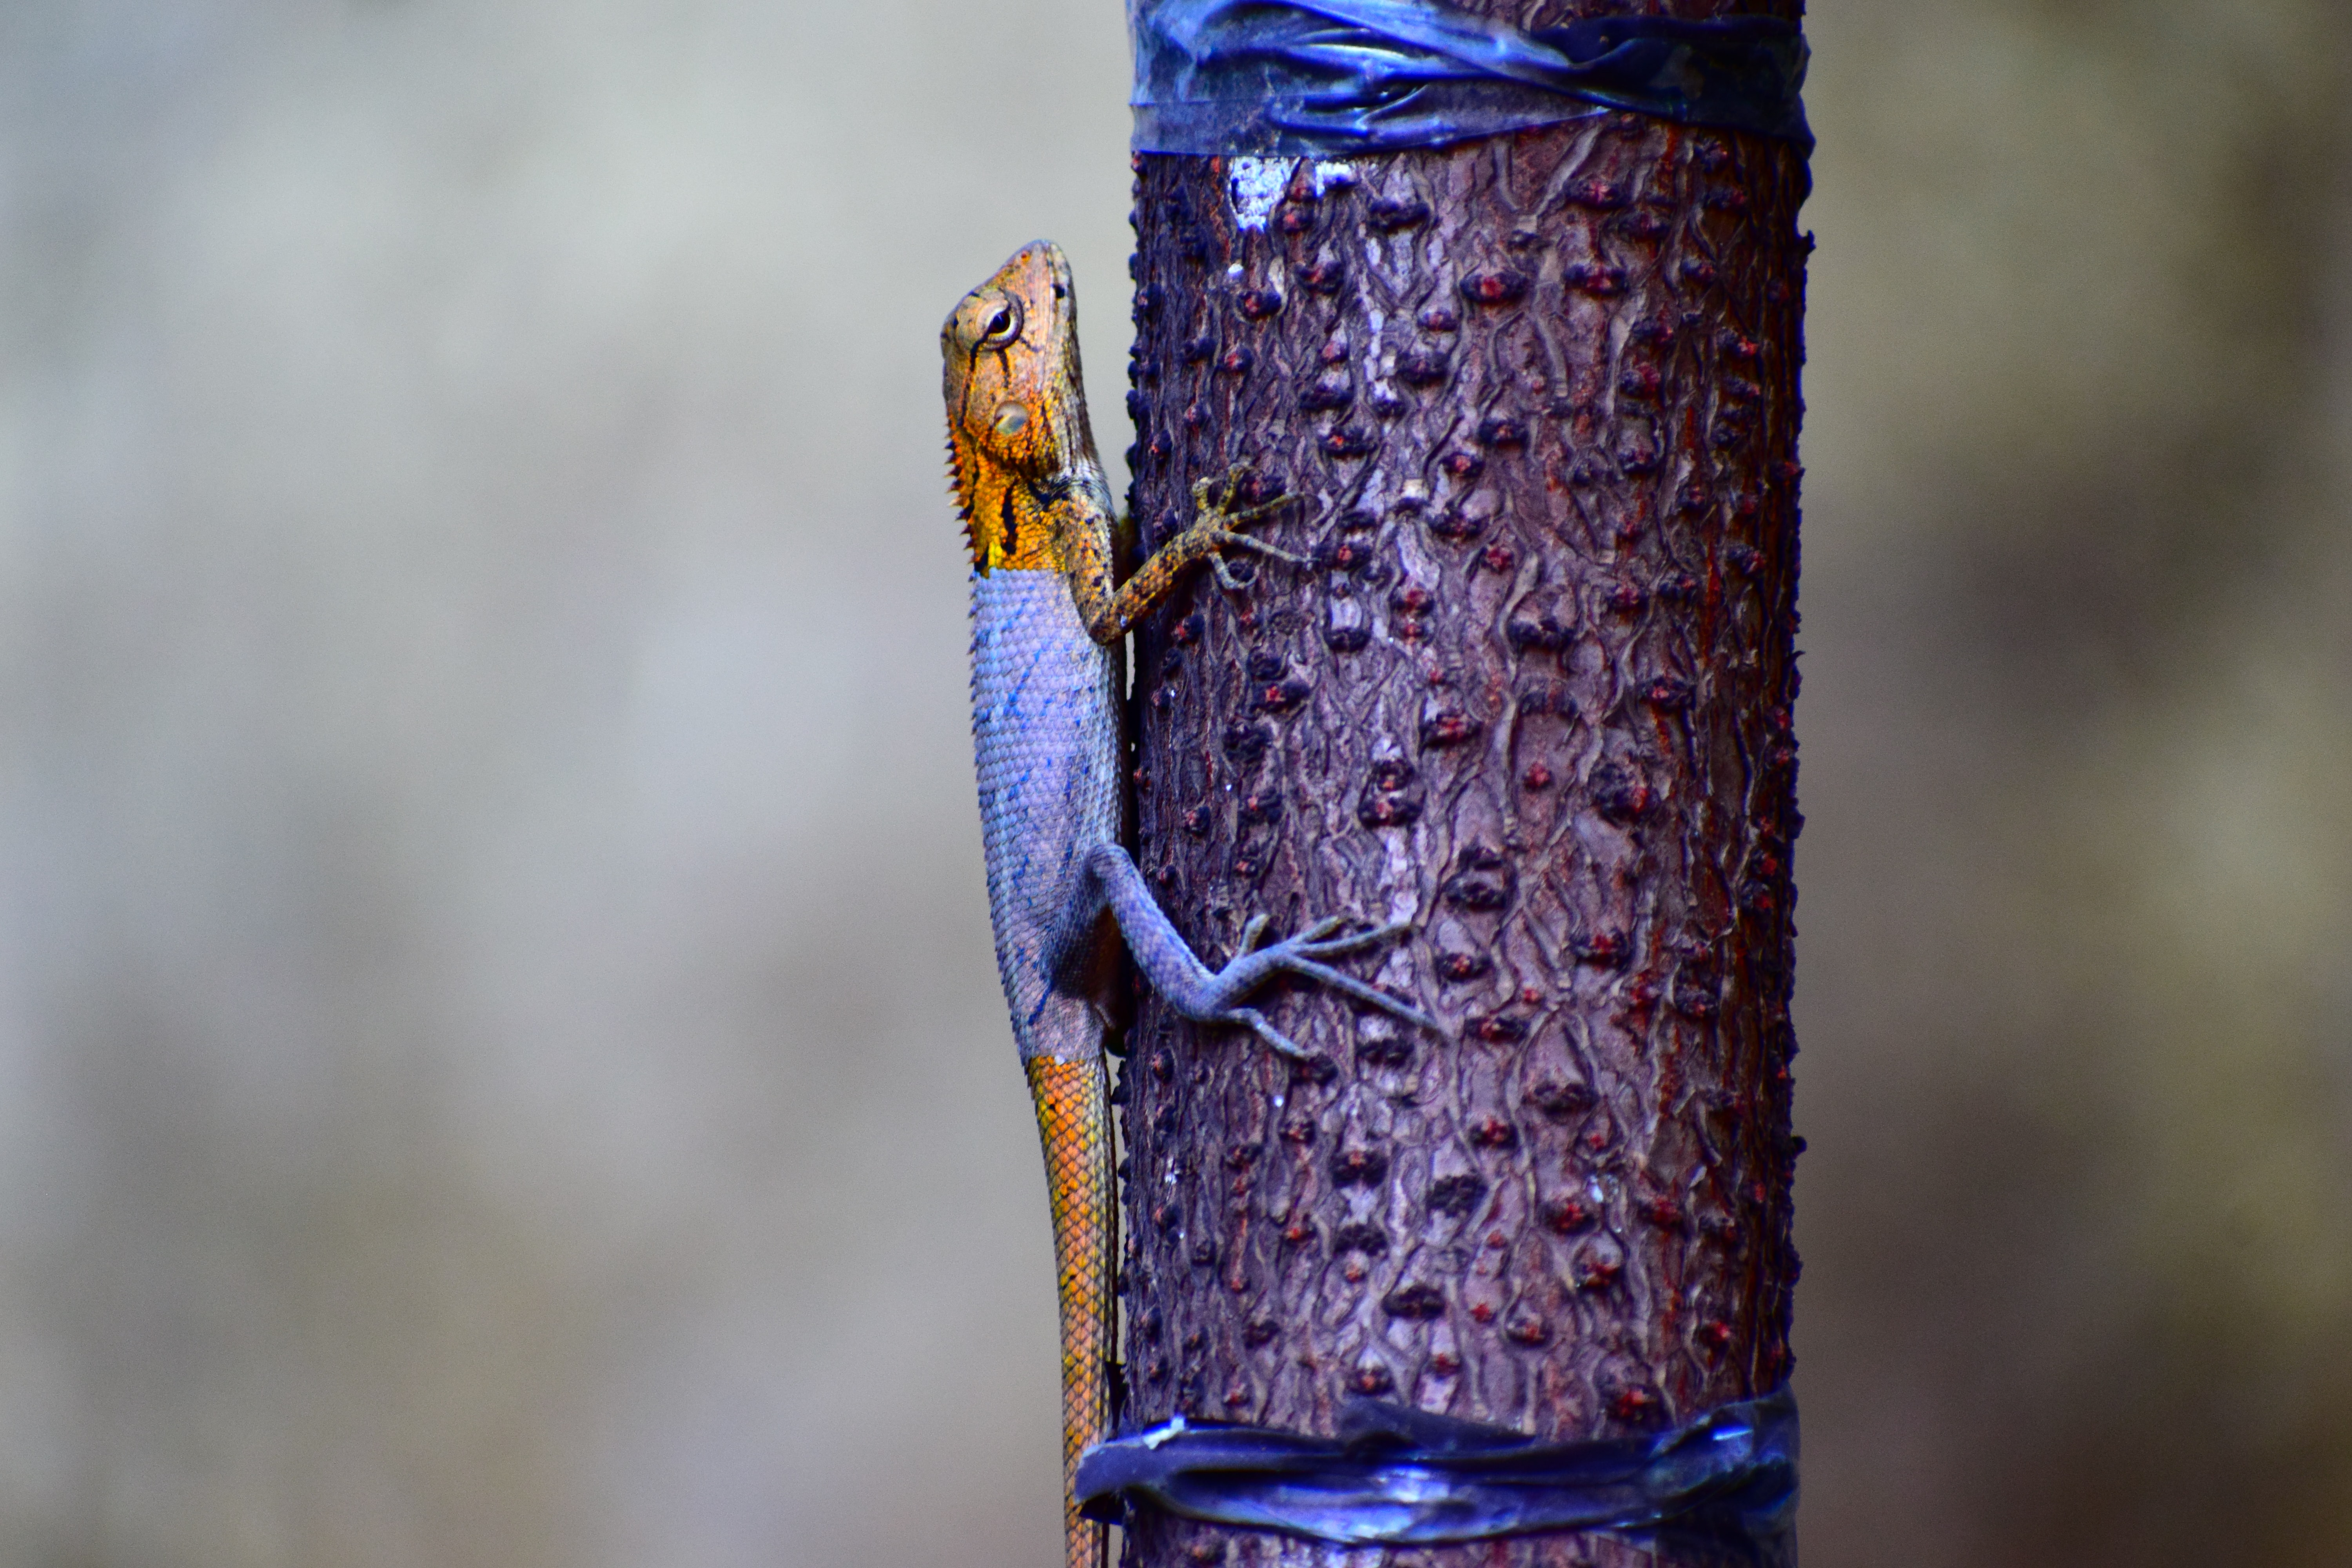 gray and brown lizard climbing on purple tree trunk